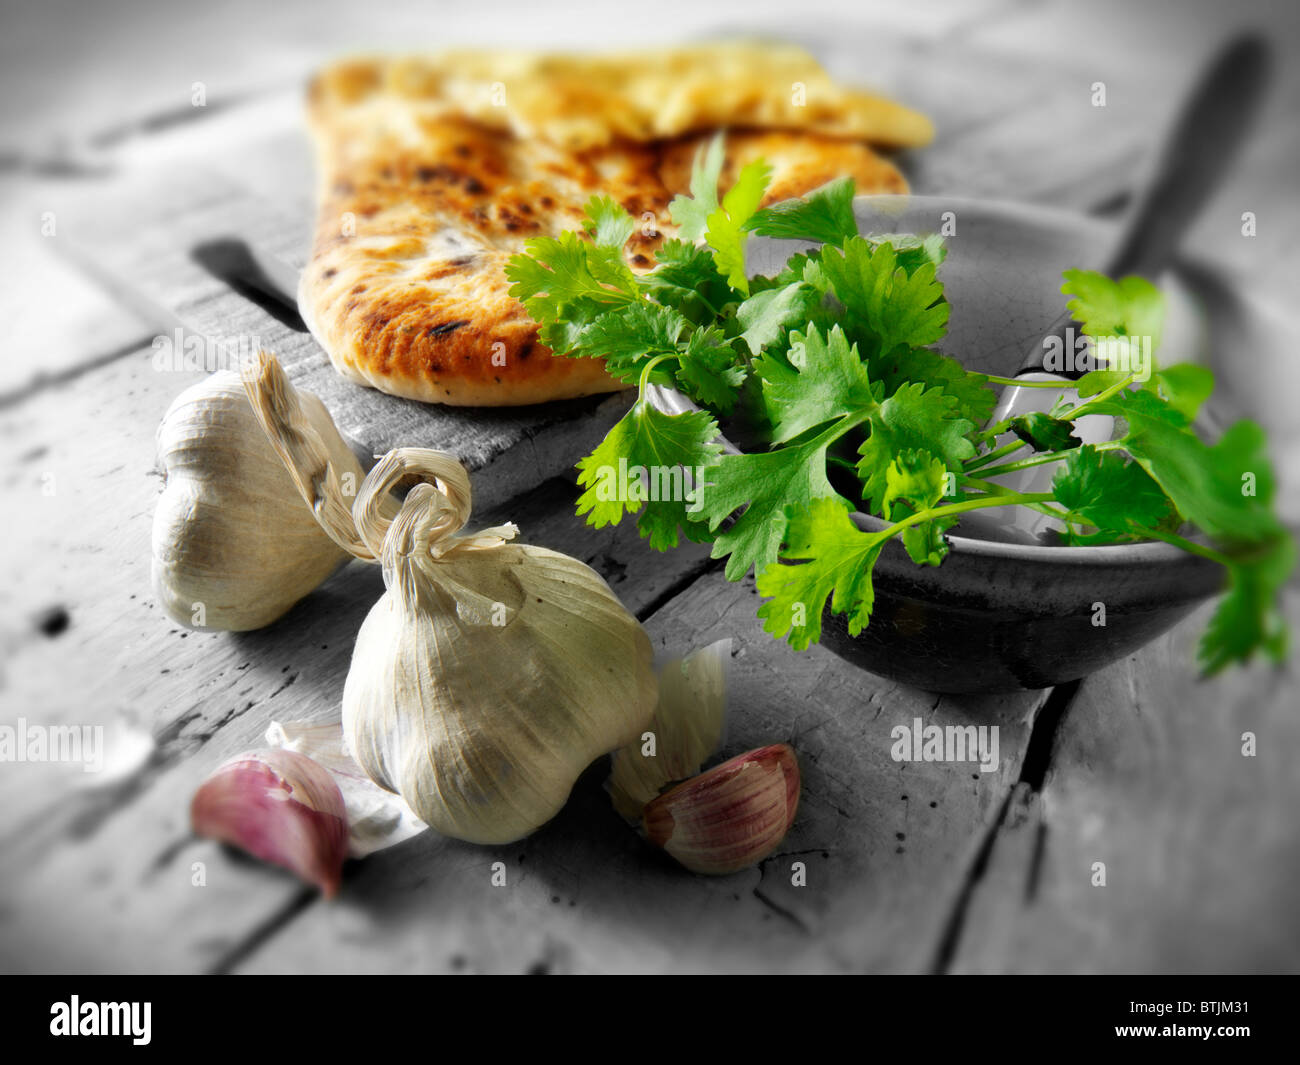 Corriander and Garlic Indian Naan bread - Stock Image